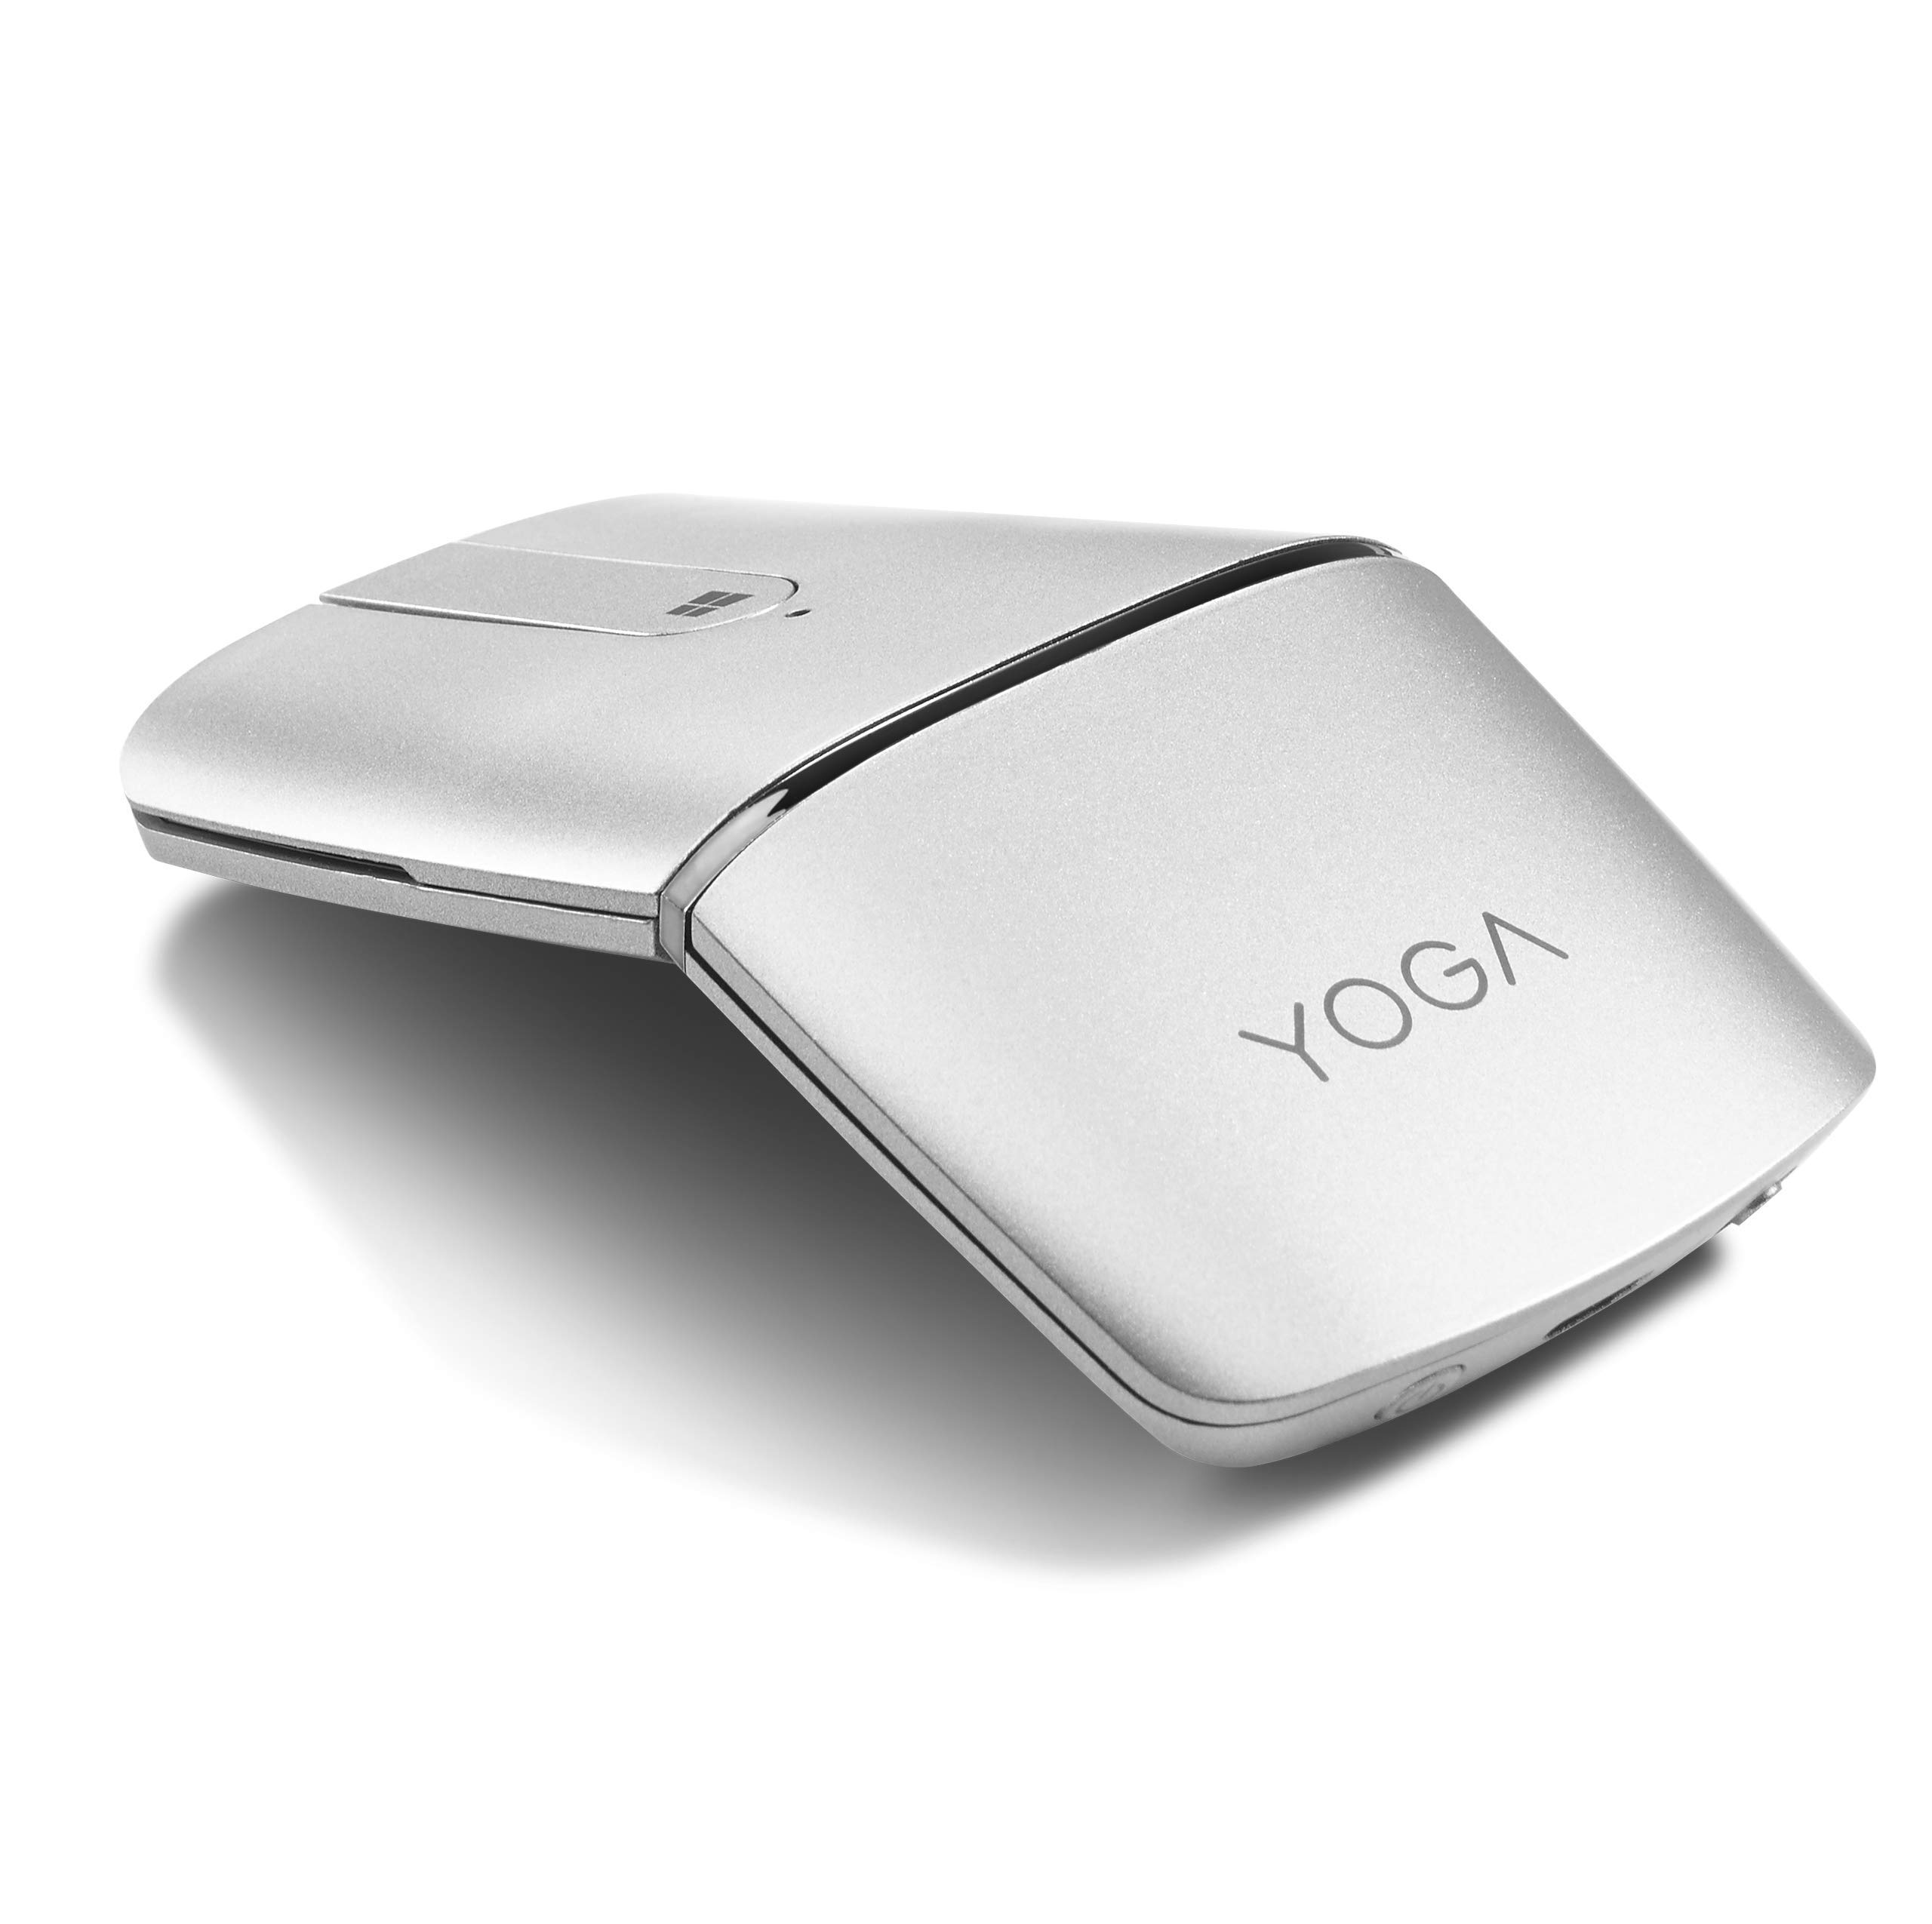 Lenovo Yoga Mouse, Silver, Ultra Slim 13.5mm, 180 Degree rotatable Hinge, 2.4G or Bluetooth 4.0 Wireless Connection, Multilayer Adaptive touchpad, Rechargeable Battery, GX30K69568 by Lenovo